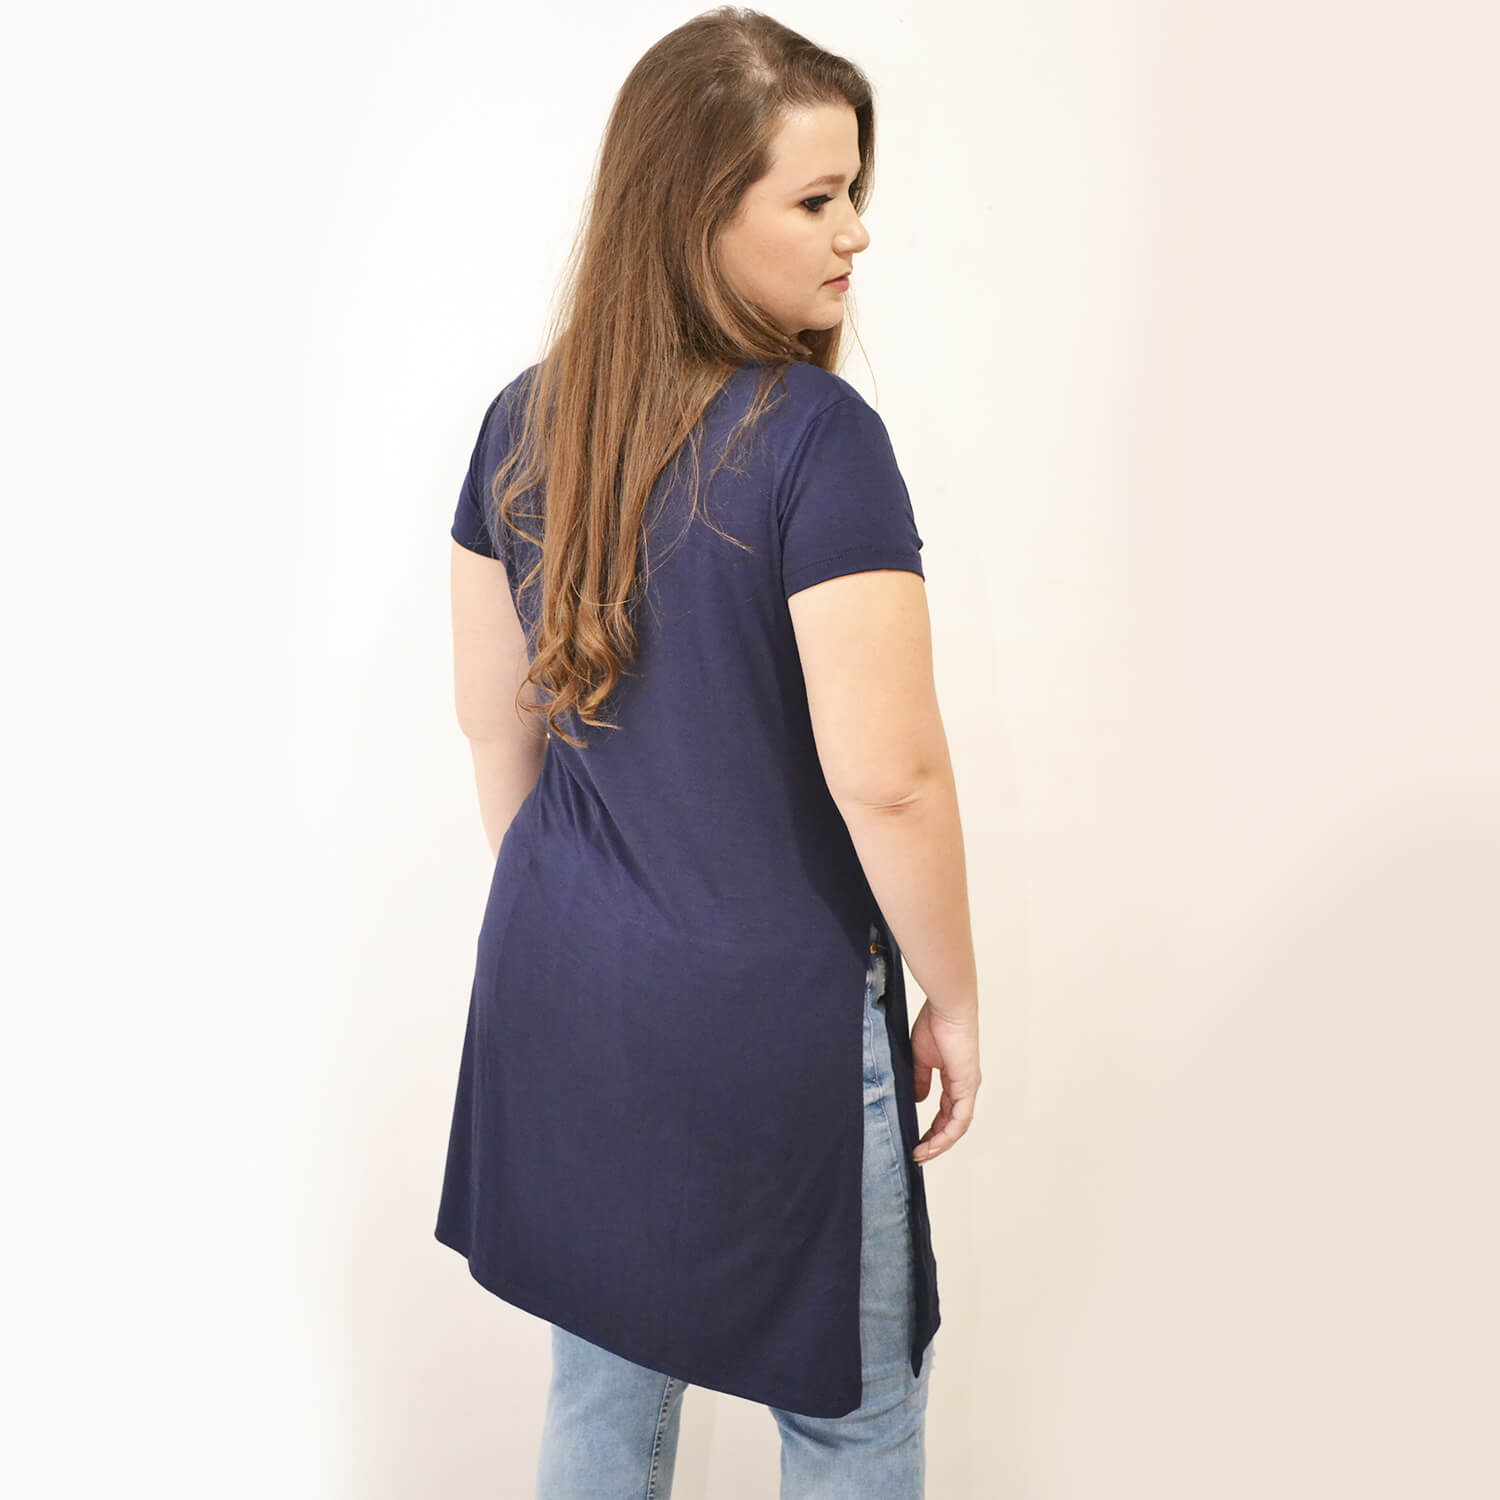 Blusa Longa Feminina Plus Size - Annual Plus